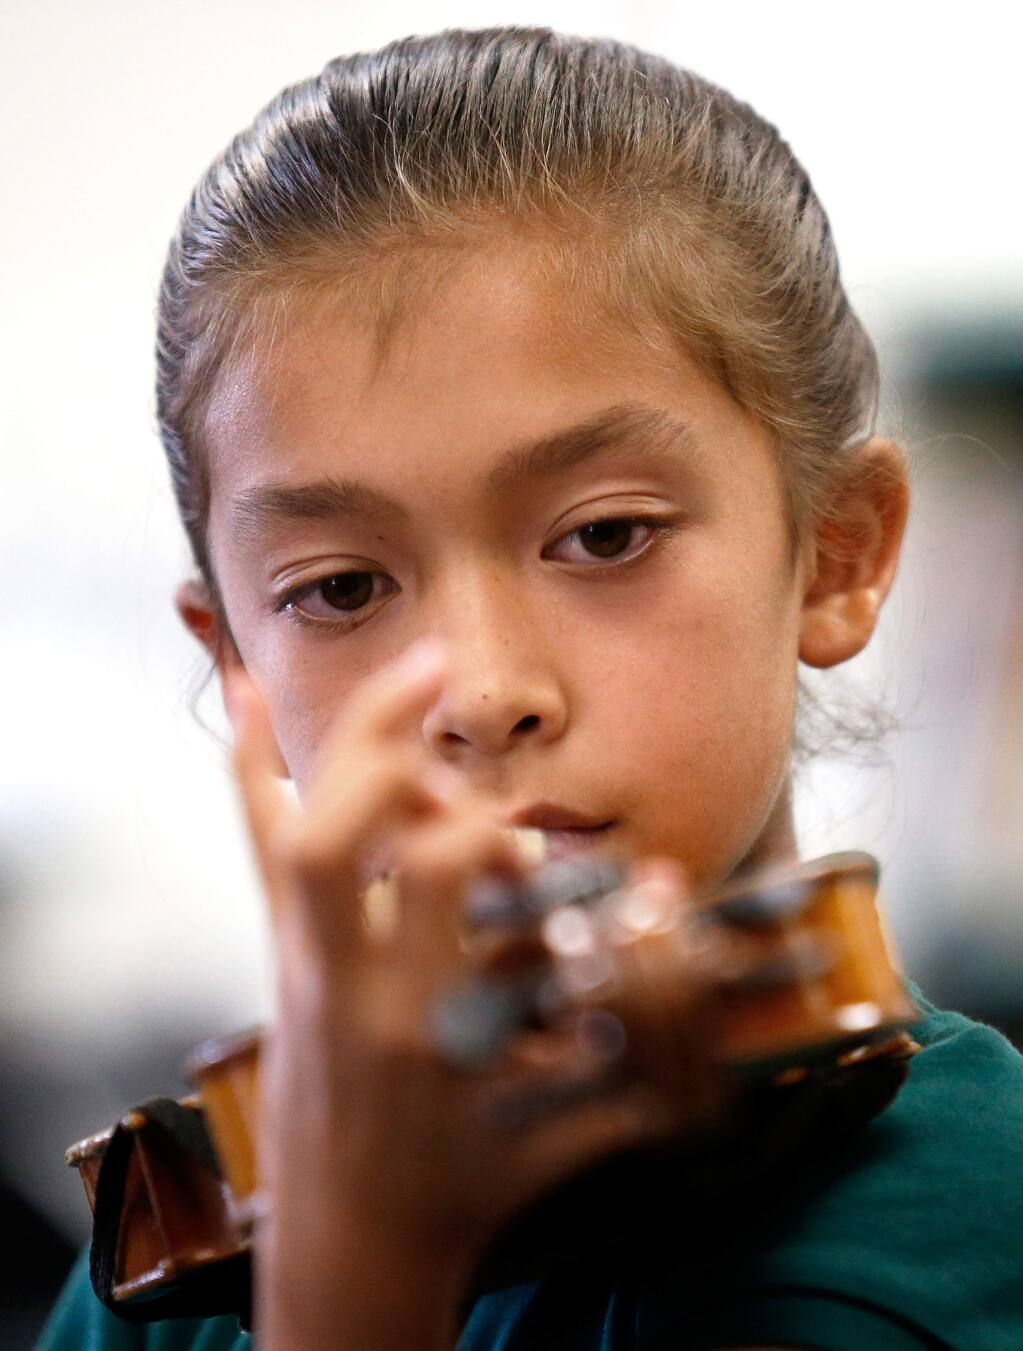 Sixth grader Sofia Santana, 10, plucks a few notes on her violin after she and her classmates received their instruments for the first time during the music blitz program at Luther Burbank Elementary School in Santa Rosa, California, on Thursday, September 13, 2018. (Alvin Jornada / The Press Democrat)